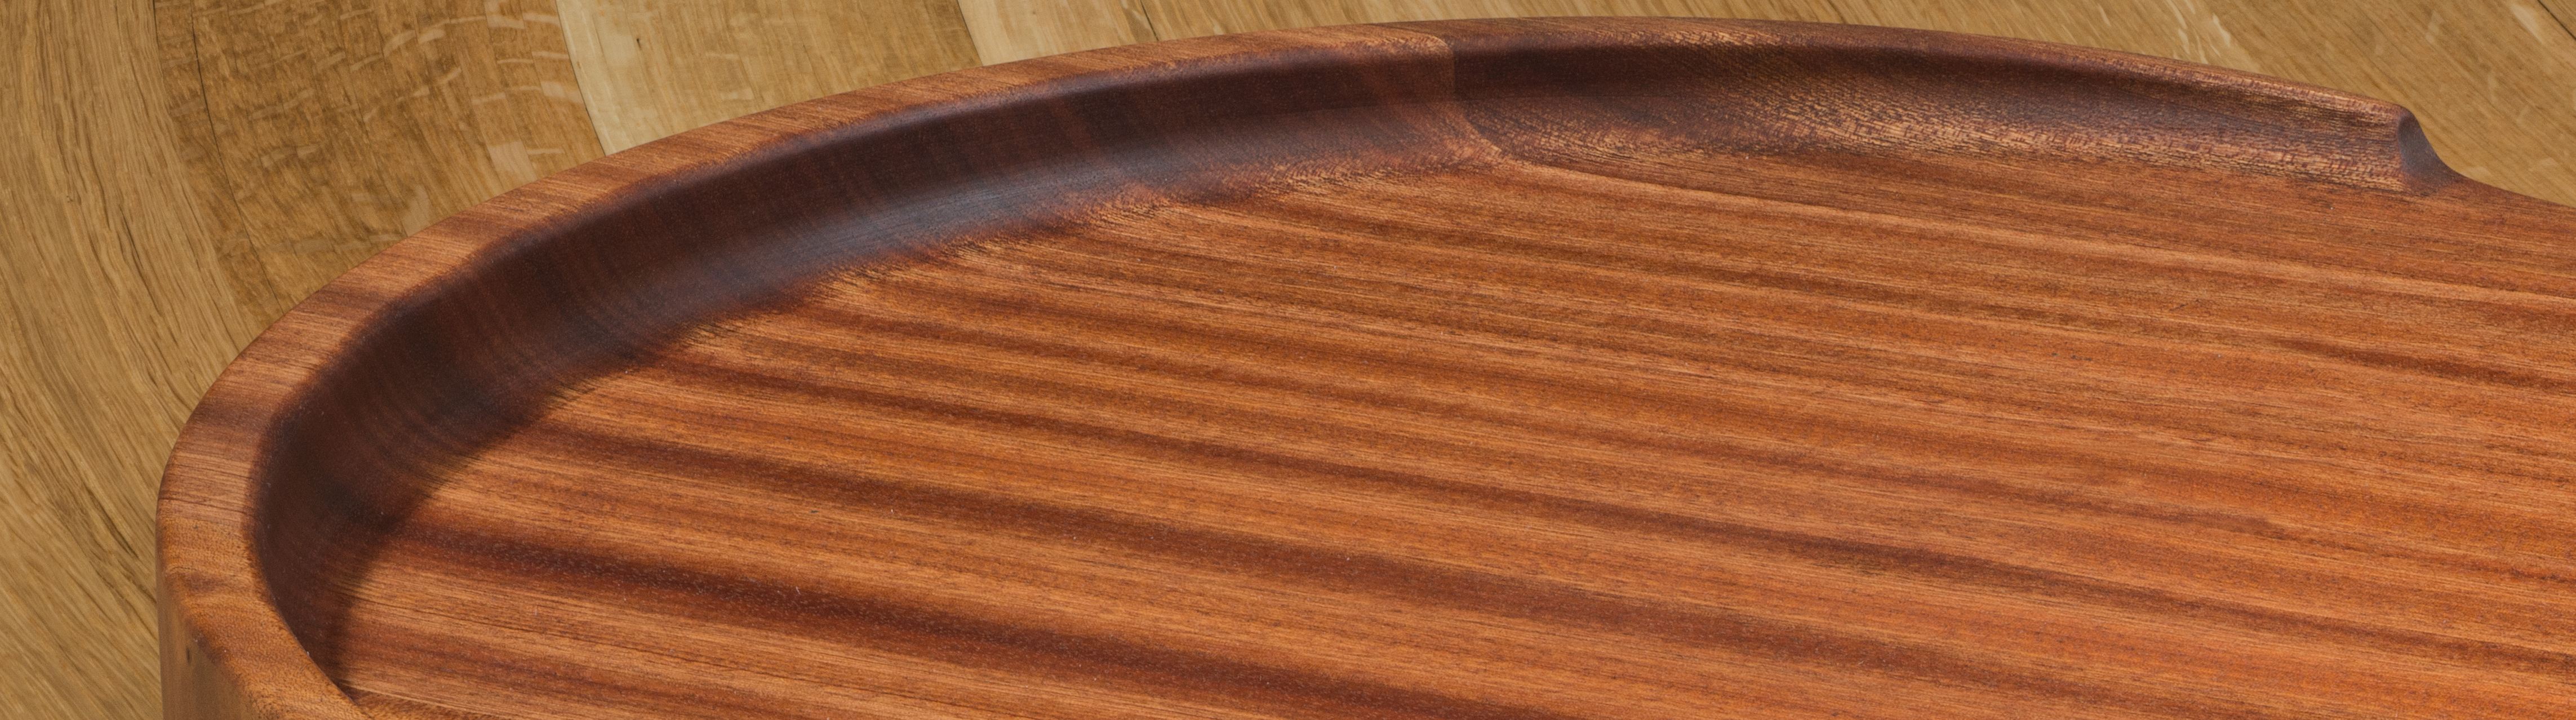 Trencher Cutting Board with Ascending Wall